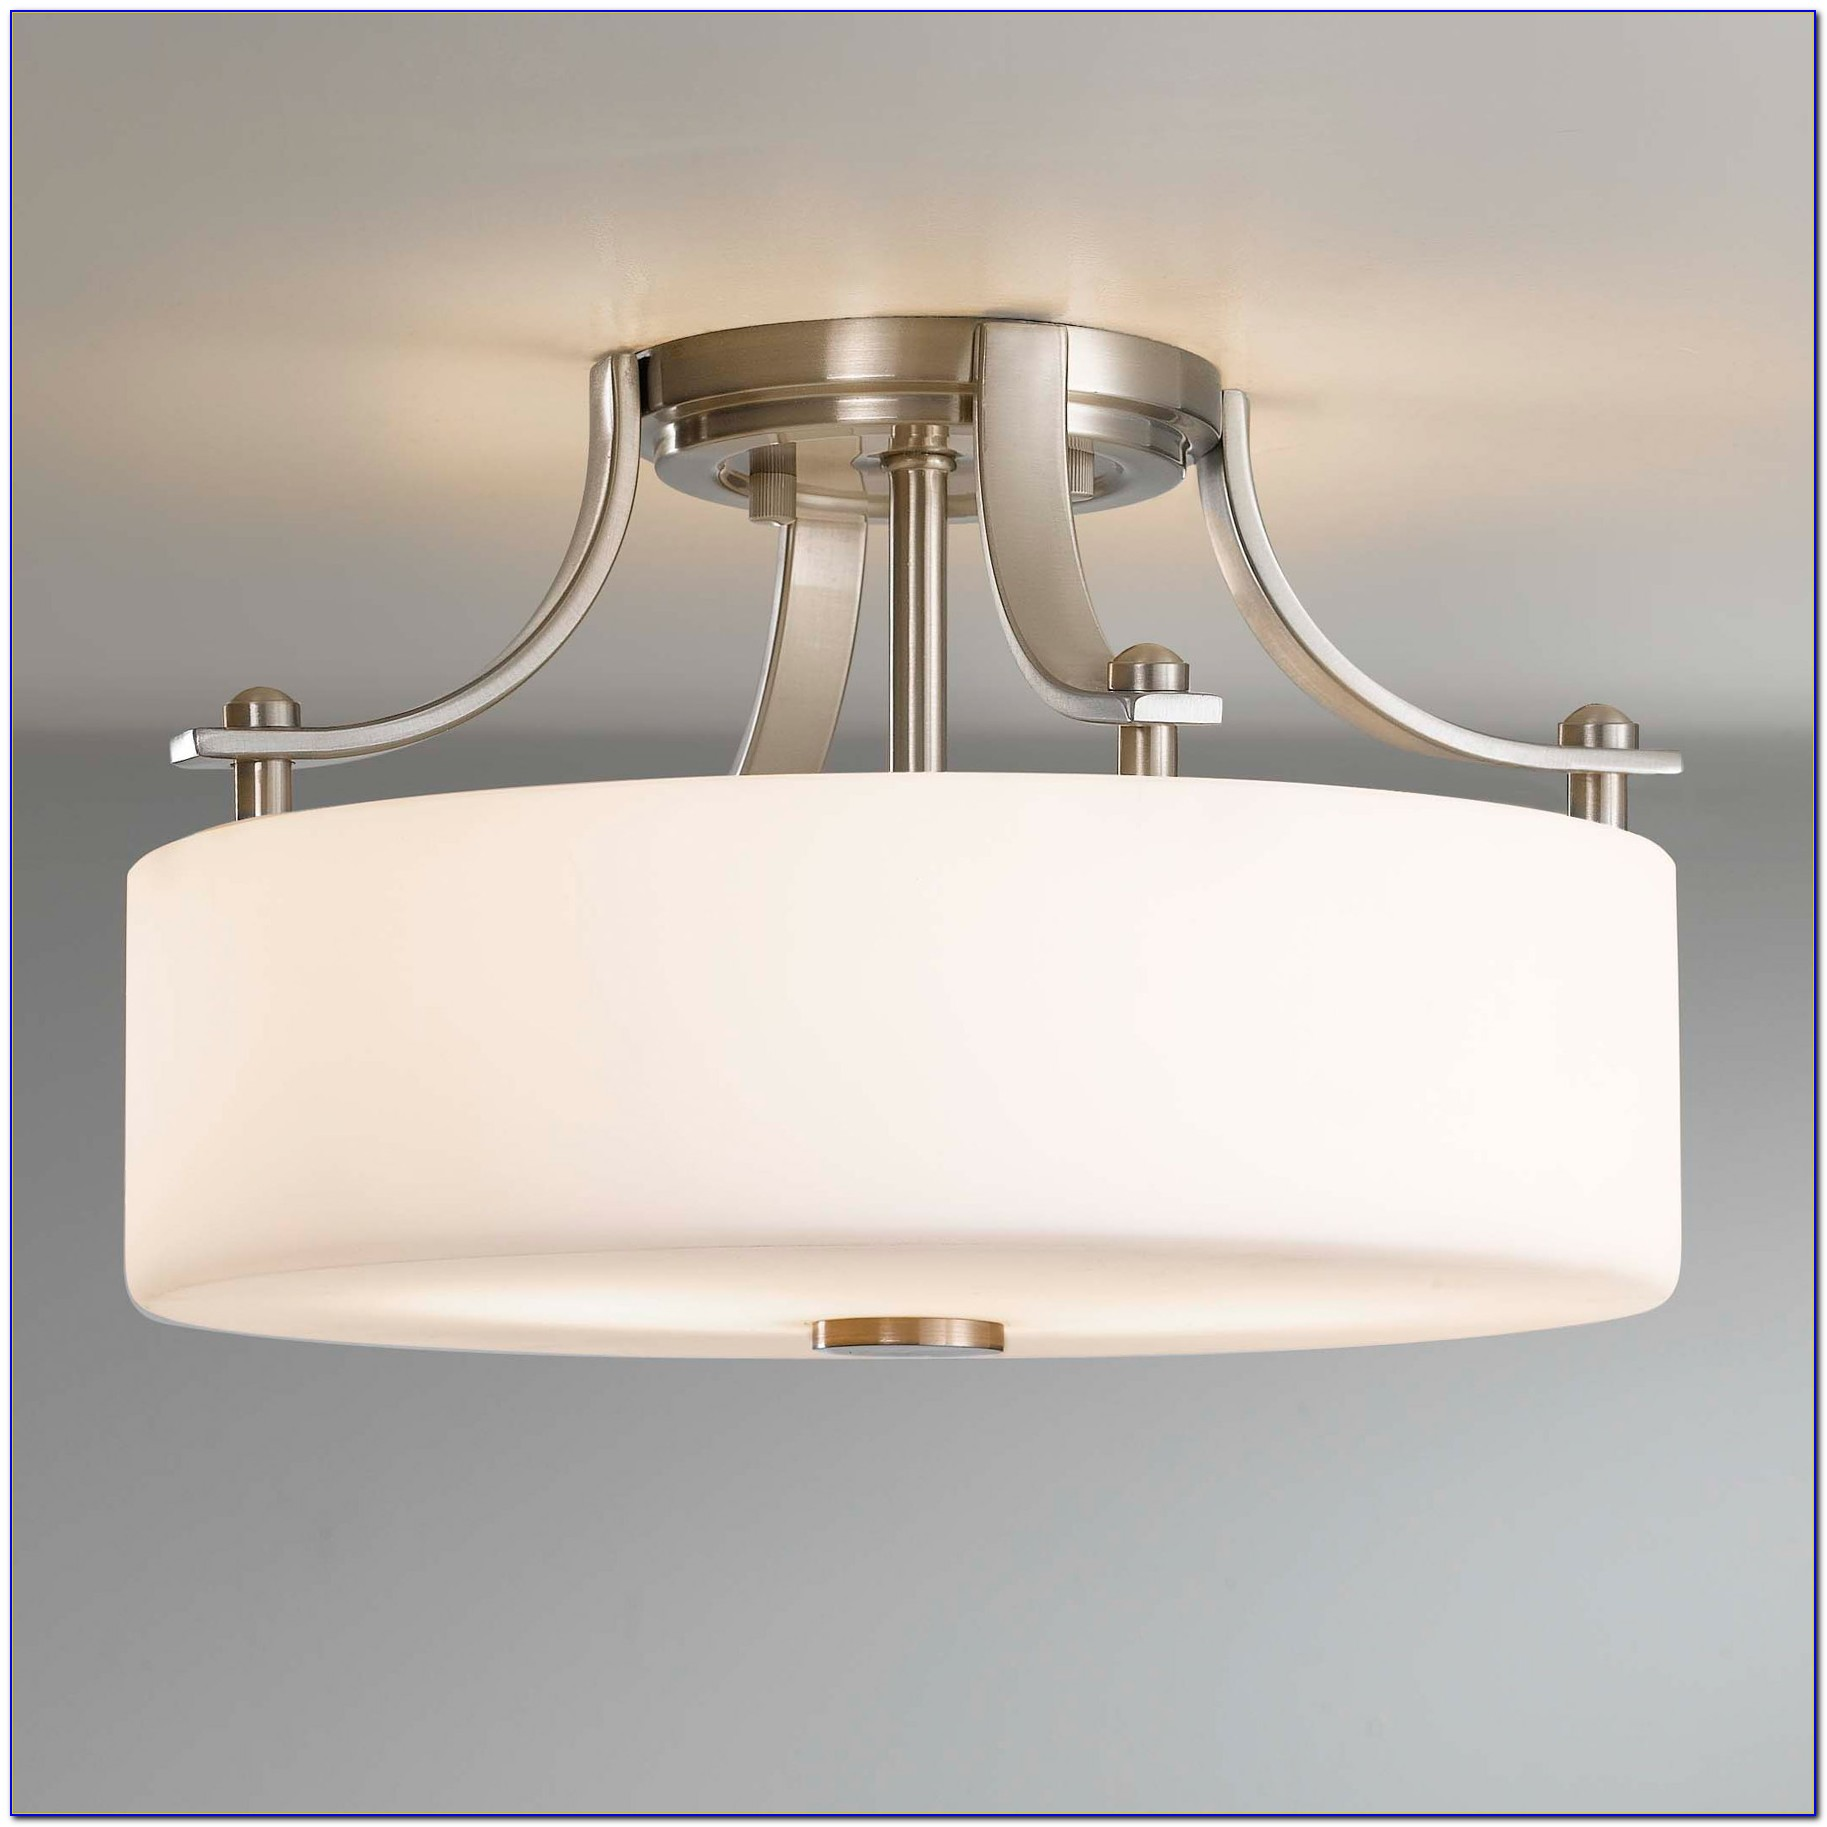 Ceiling Semi Flush Mount Light Fixtures